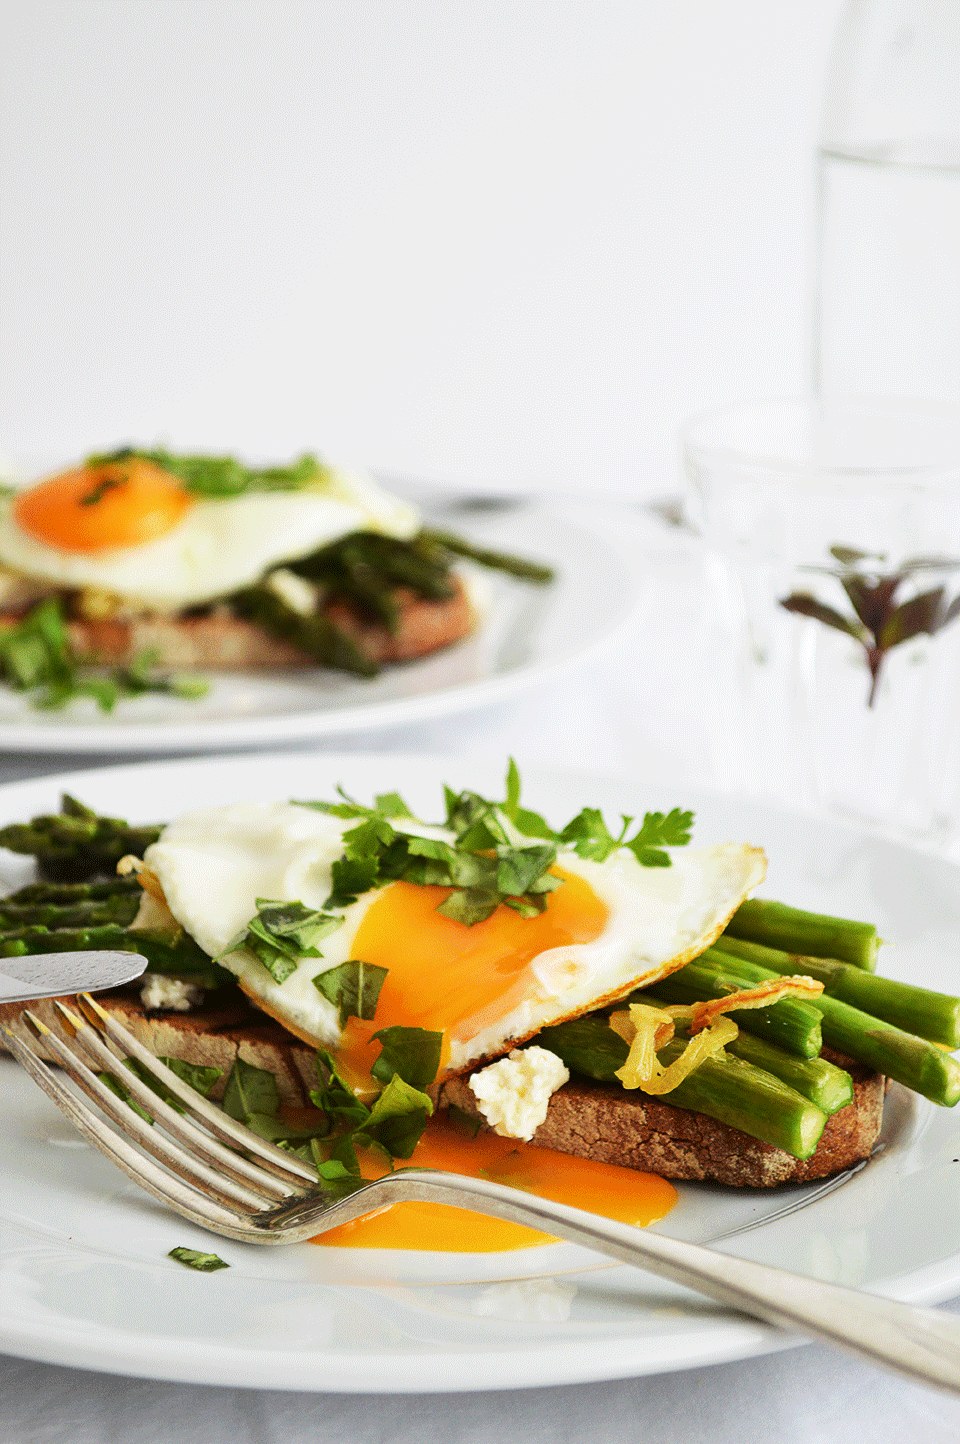 Asparagus and Eggs on Toast | https://oandrajos.blogspot.com